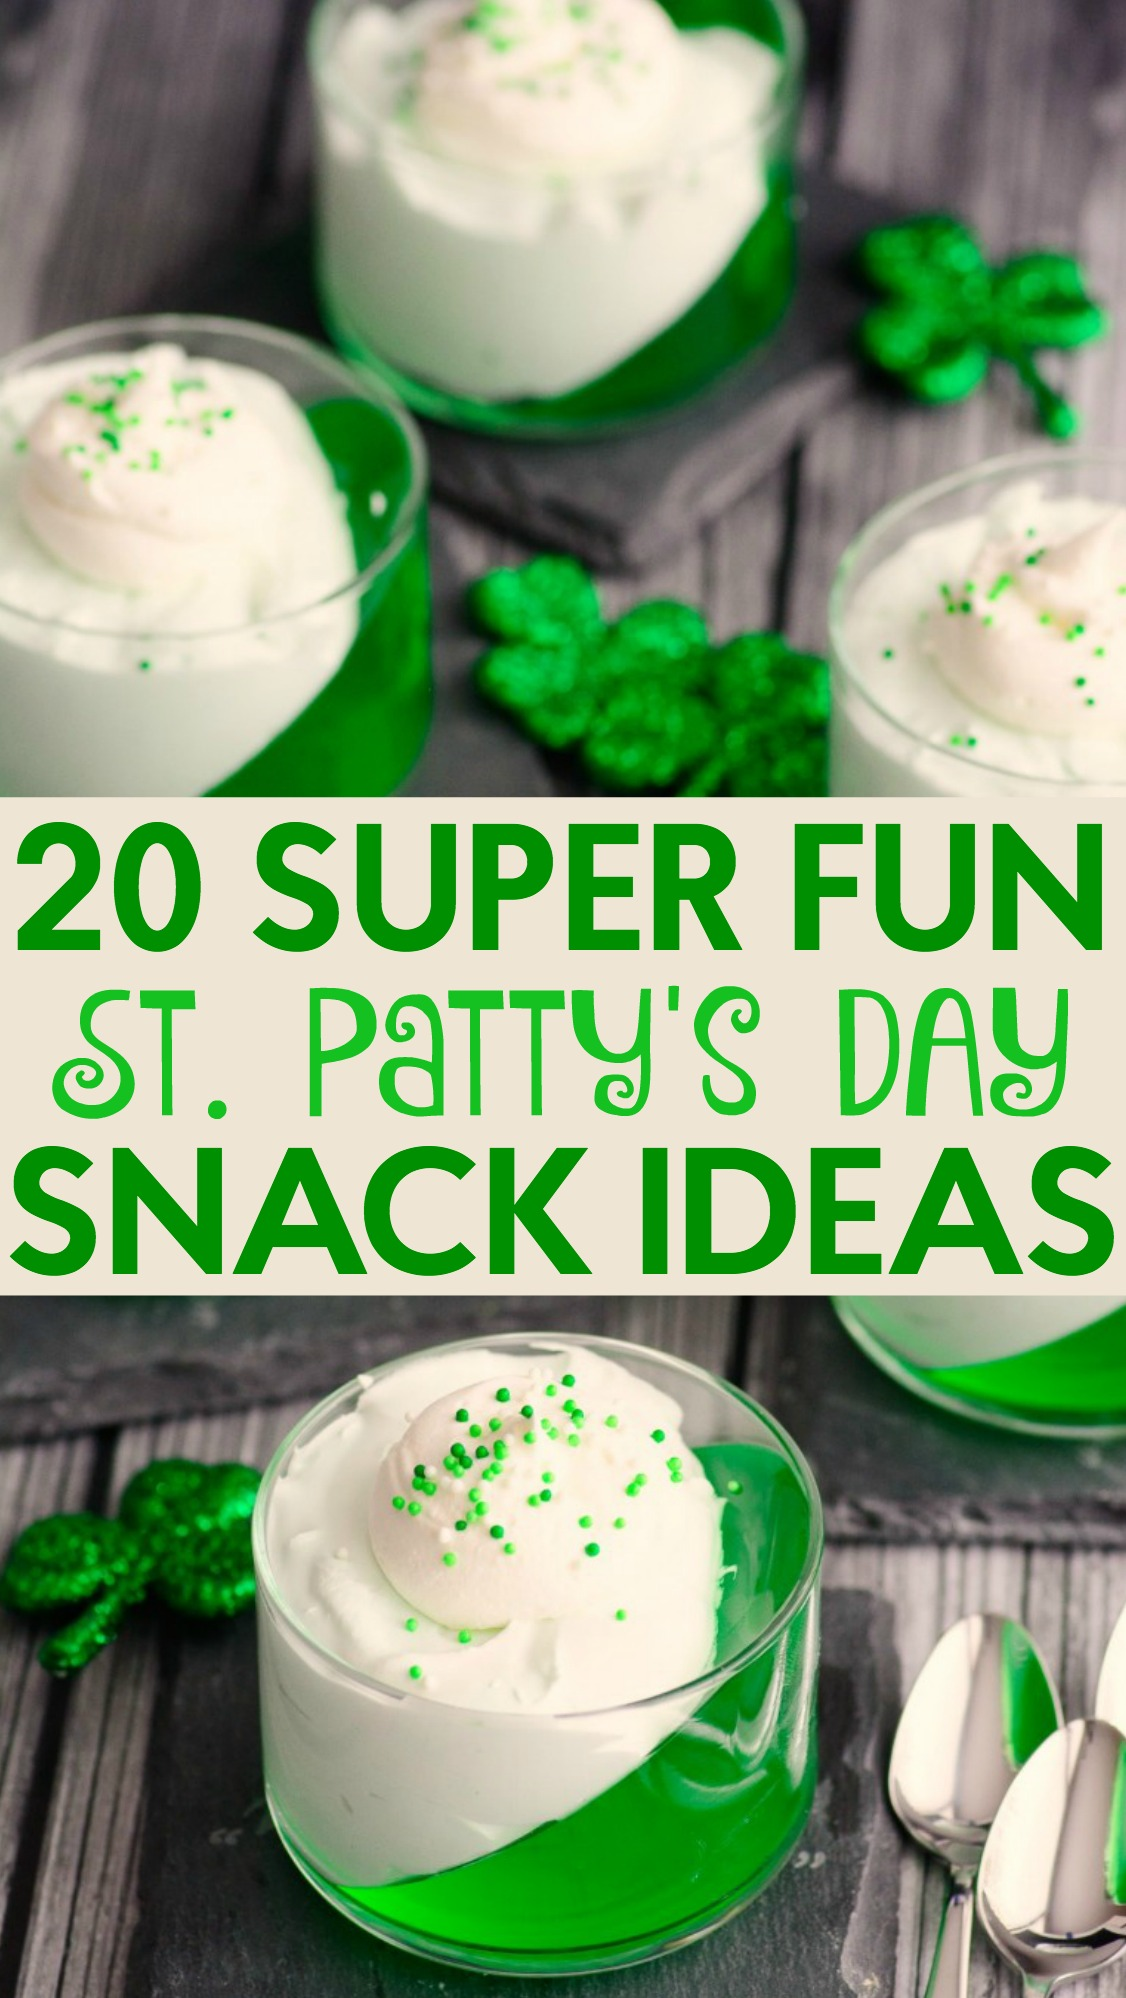 20_St. Patrick's_Day_Party_Snack_Ideas